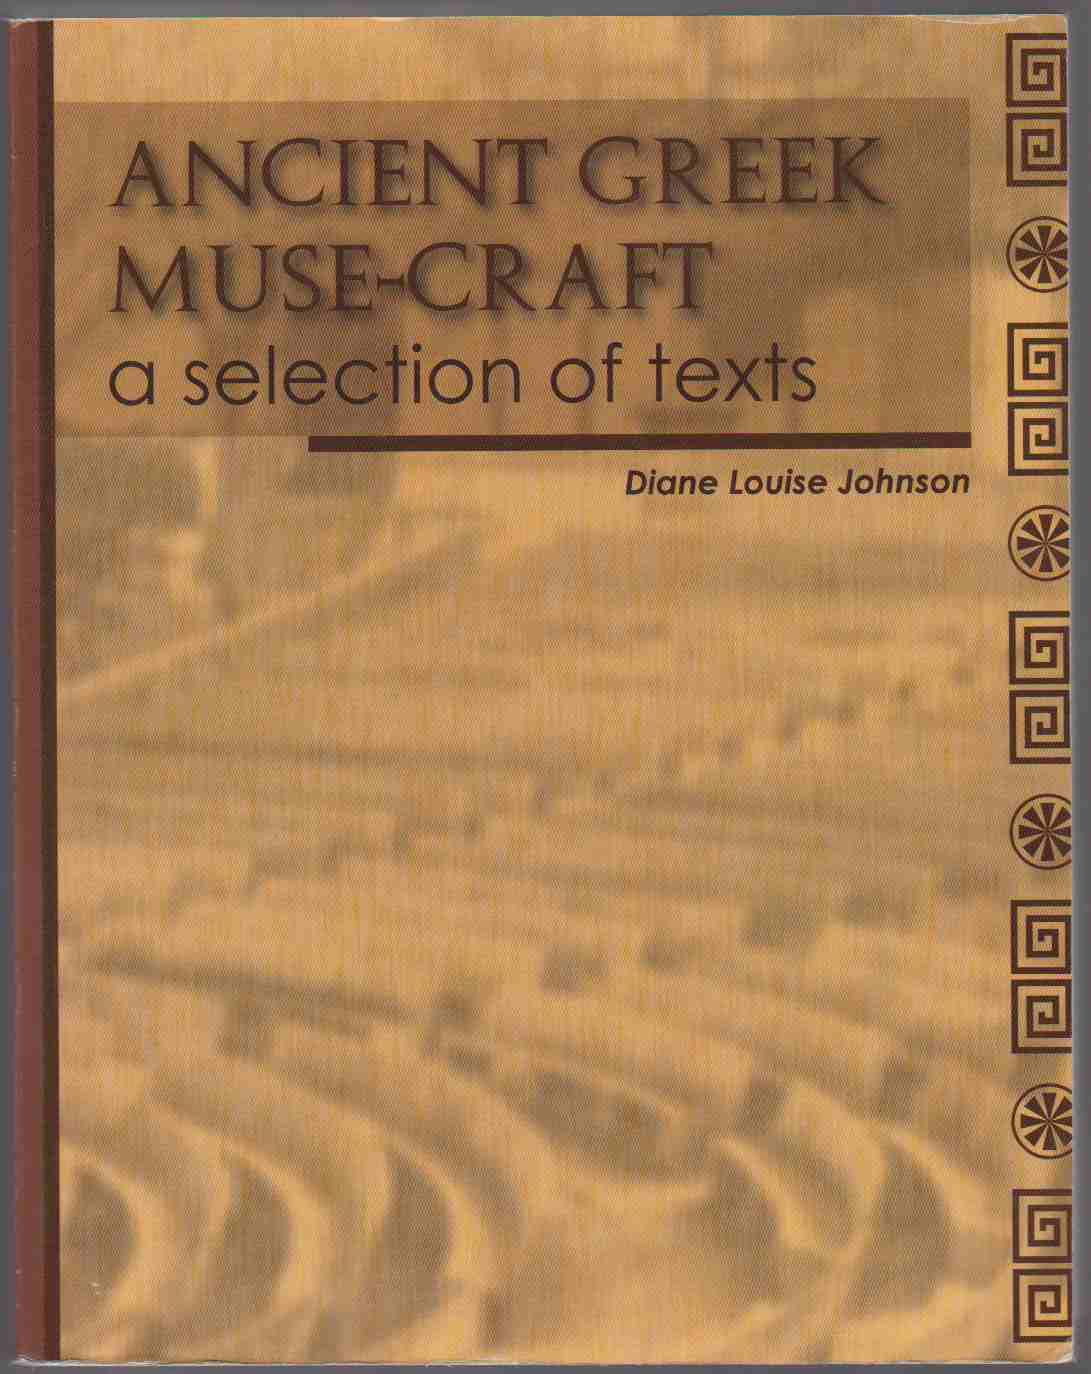 Image for ANCIENT GREEK MUSE-CRAFT A SELECTION OF TEXTS